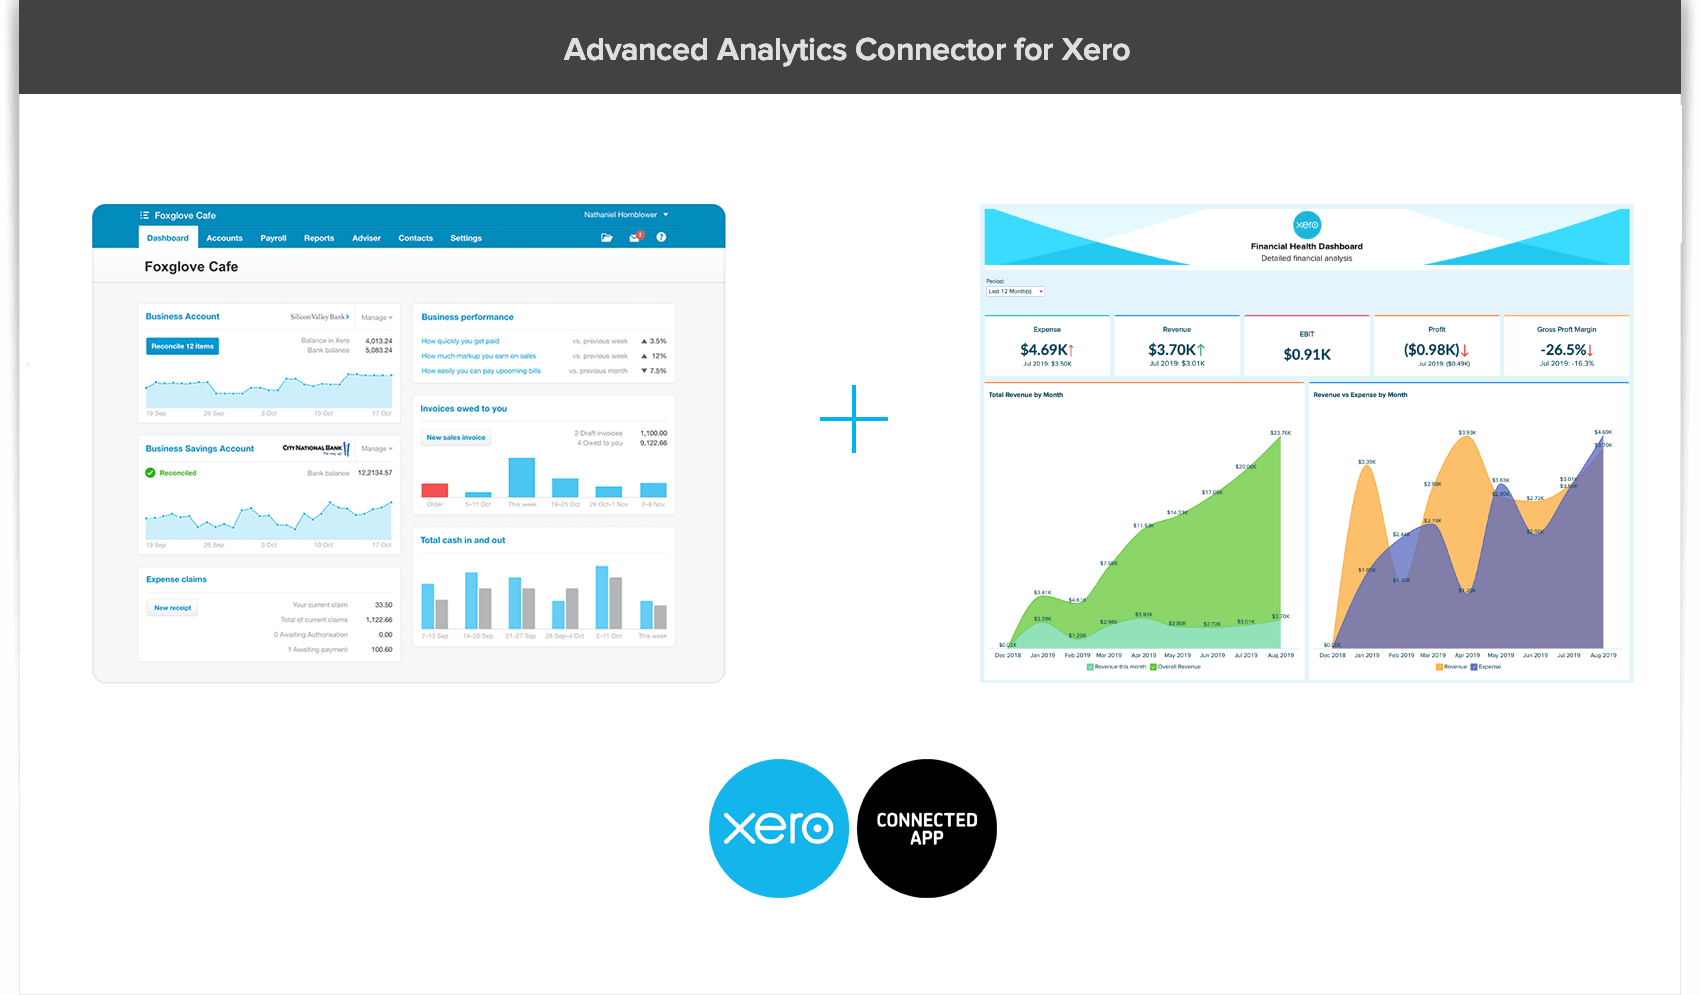 Financial Analytics for Xero